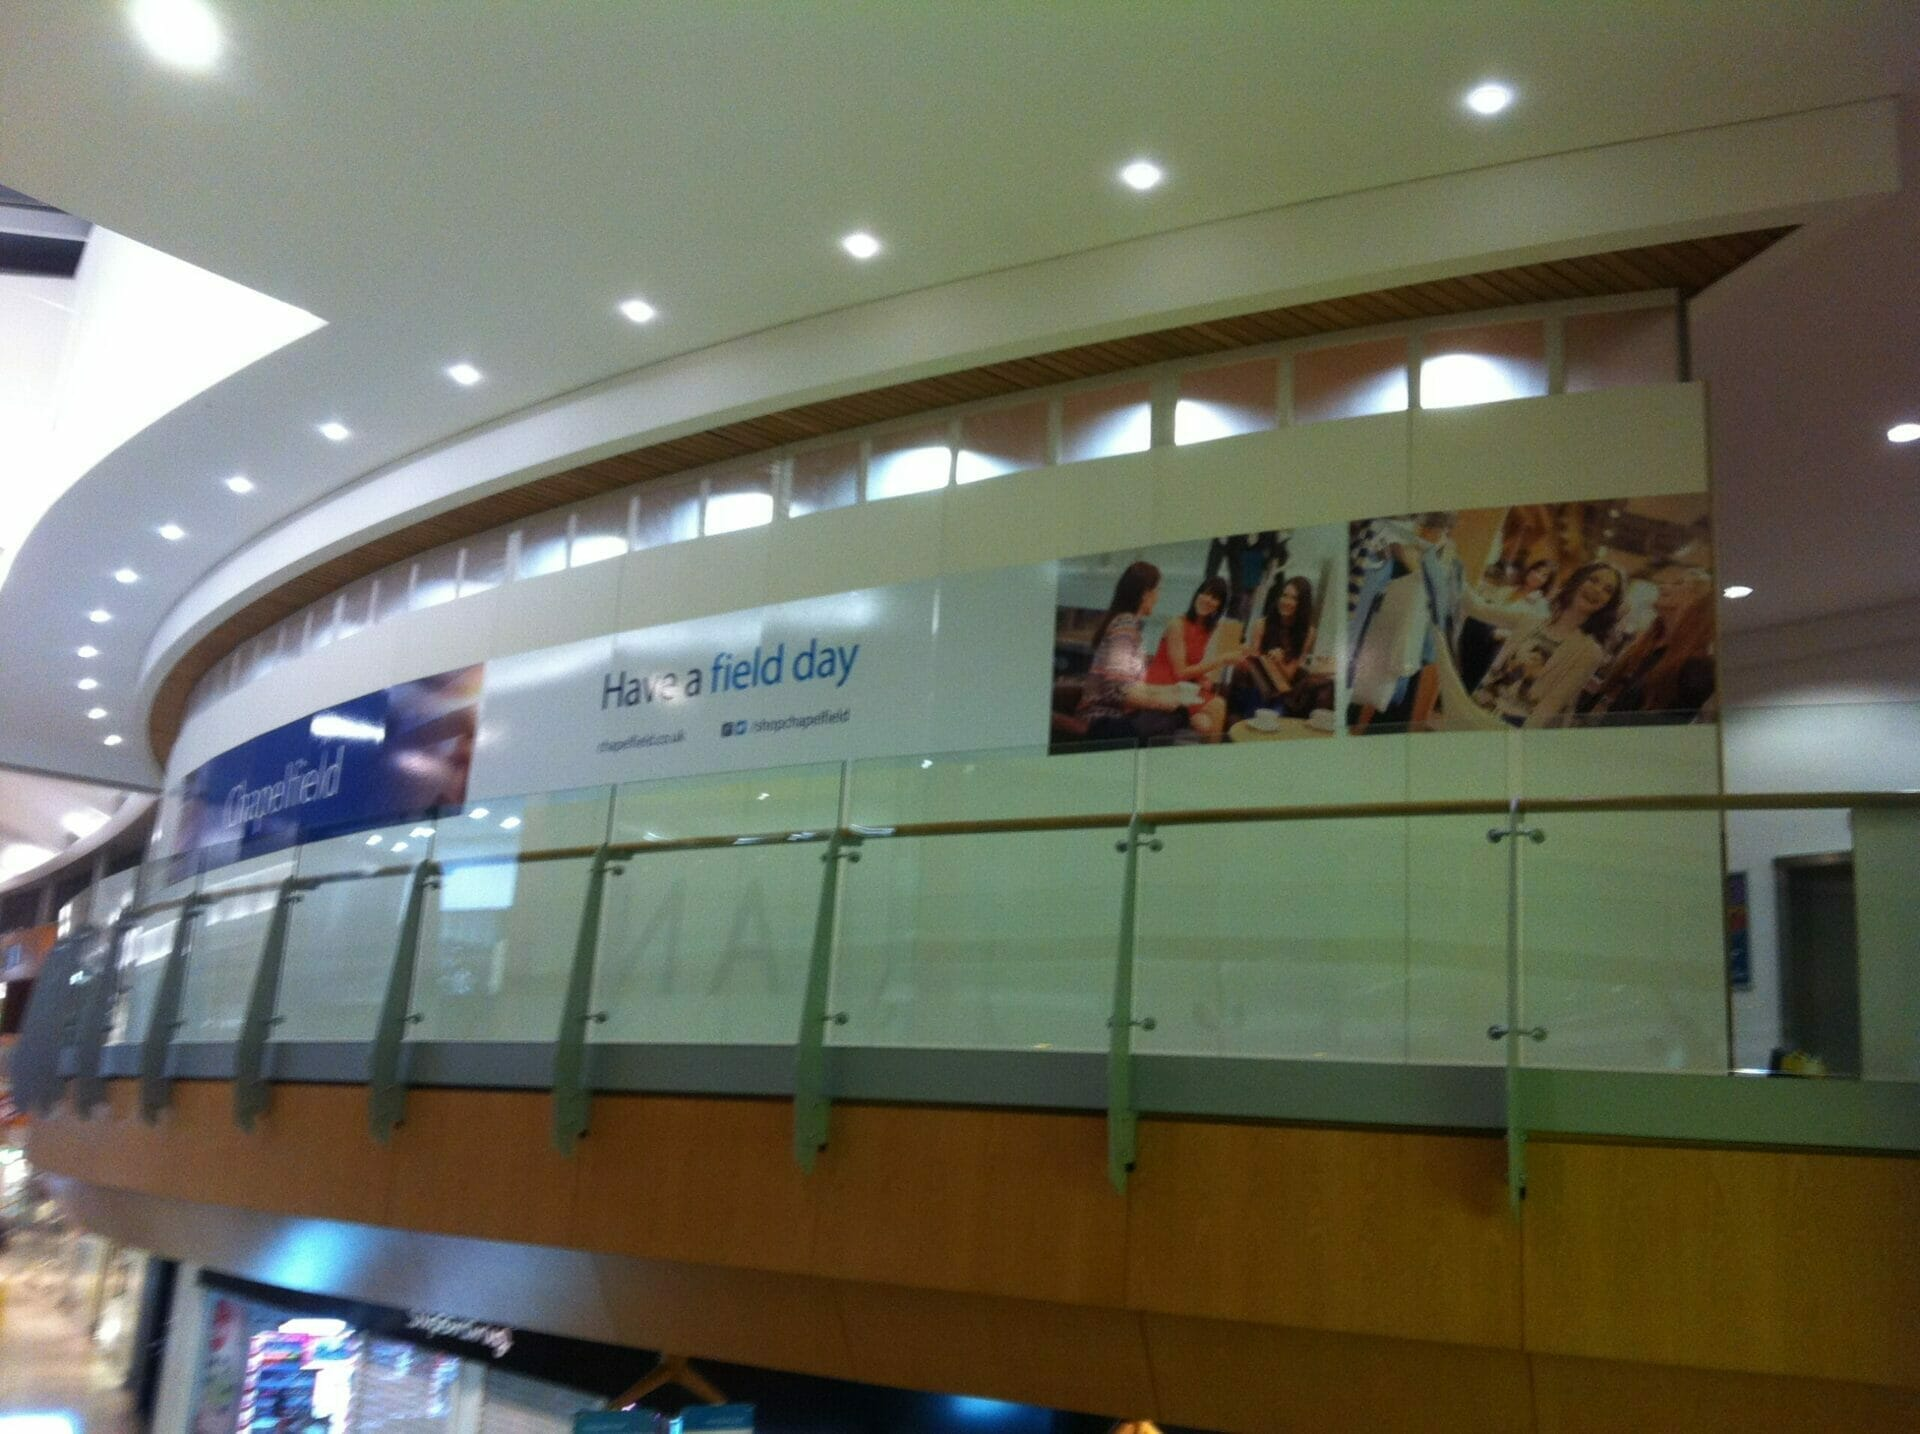 More custom vinyl wall stickers in a shopping centre